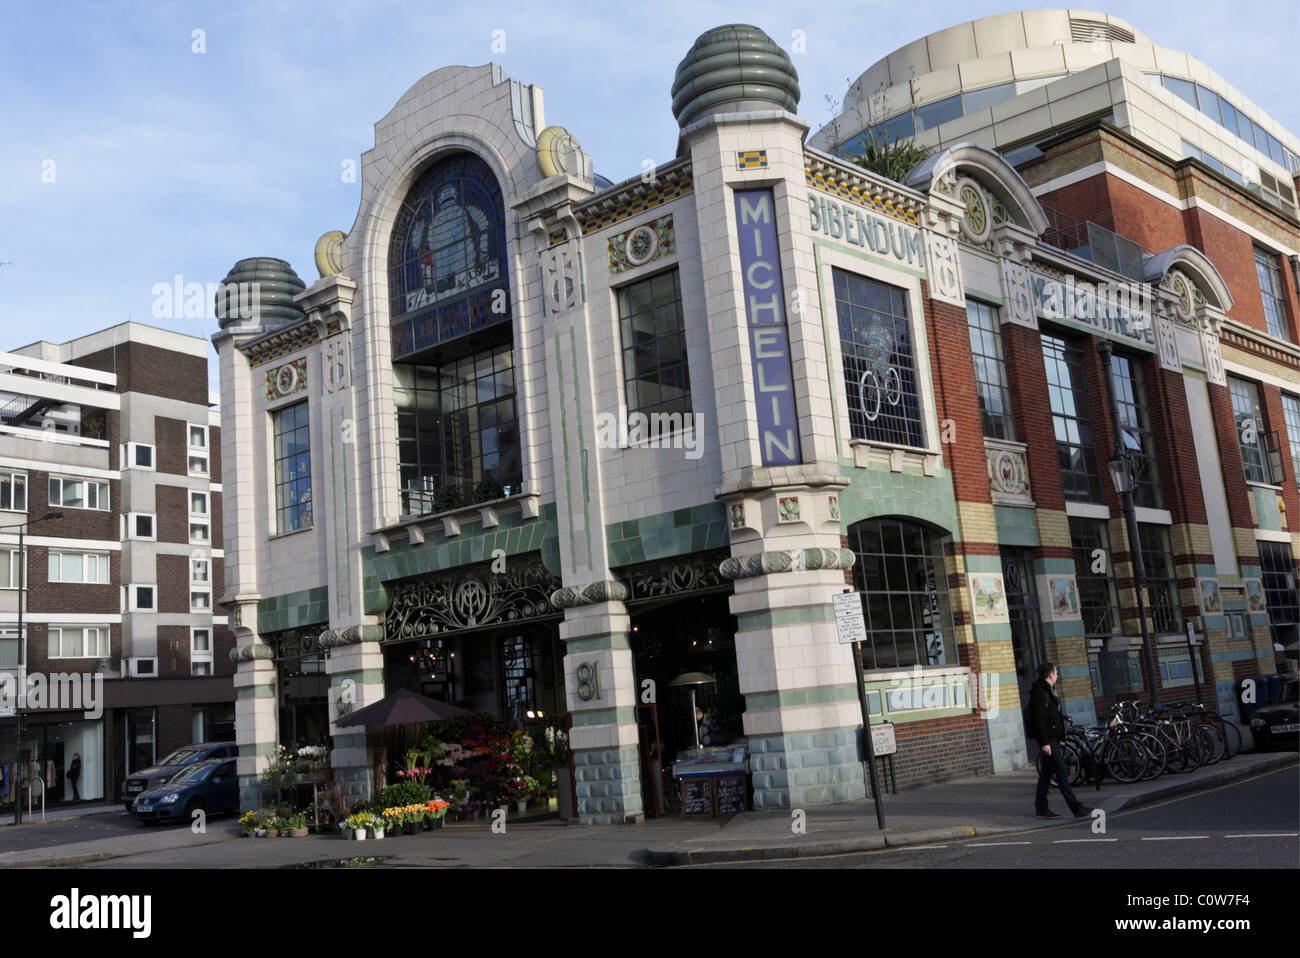 The Michelin Building in Chelsea, viewed here in daylight hours. Stock Photo